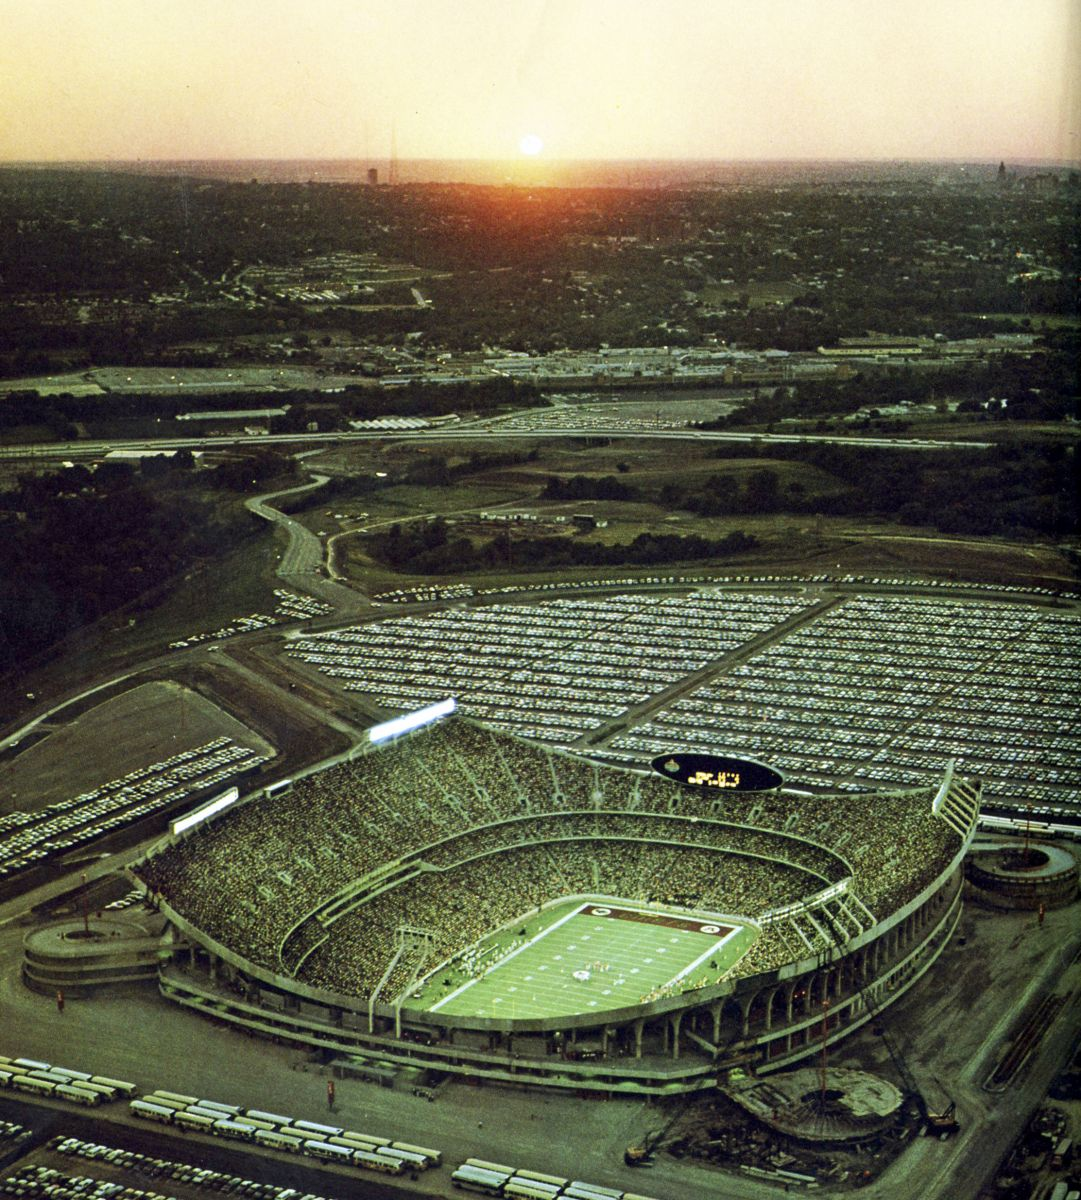 How did Arrowhead Stadium get its name? We answer a reader's